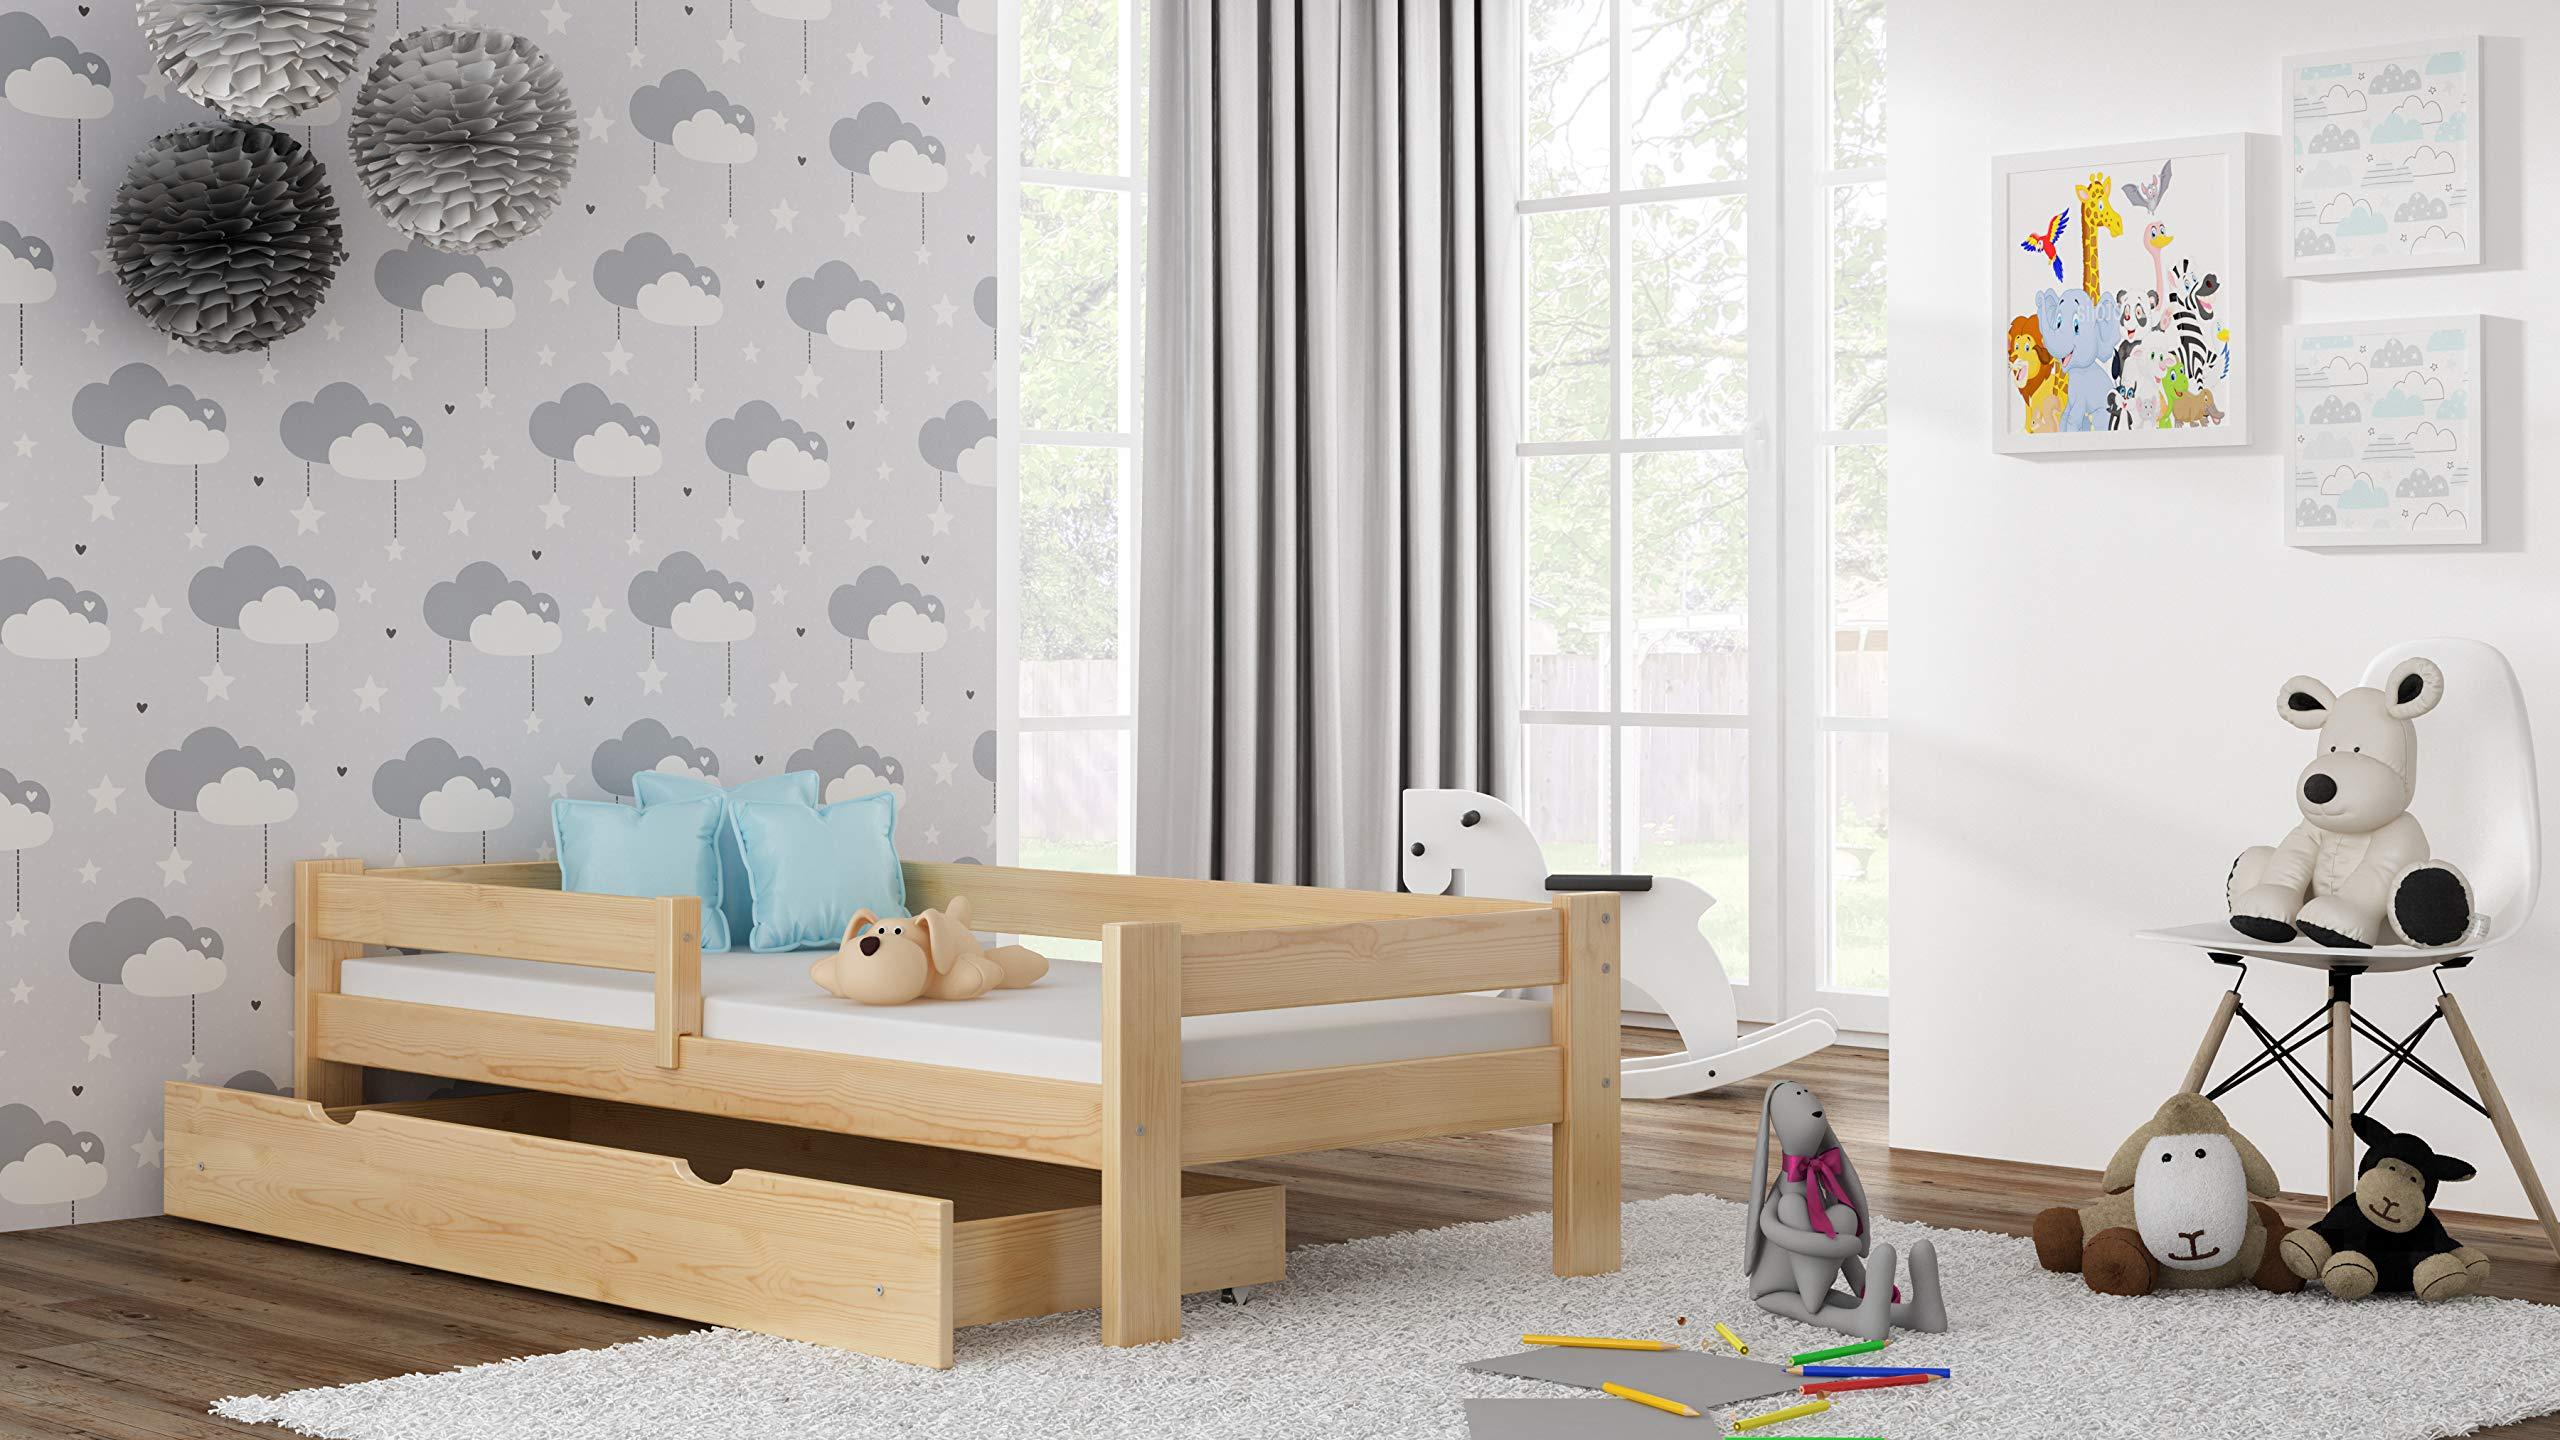 Children's Beds Home Solid Pine Wood Single Bed - Willow comes with Drawers and Foam Mattress Included (190x90, Natural) Children's Beds Home Internal Dimensions in cm's are 140x70, 160x80, 180x80, 180x90, 190x90, 200x90 (External: 147x78, 167x88, 187x88, 187x98, 197x98, 207x98) Total height up to the top of the safety barrier is 51cm Universal bed entrance - left or right side. Front barrier can also be removed at a later stage. Bed Frame has load capacity of up to 190kg 2